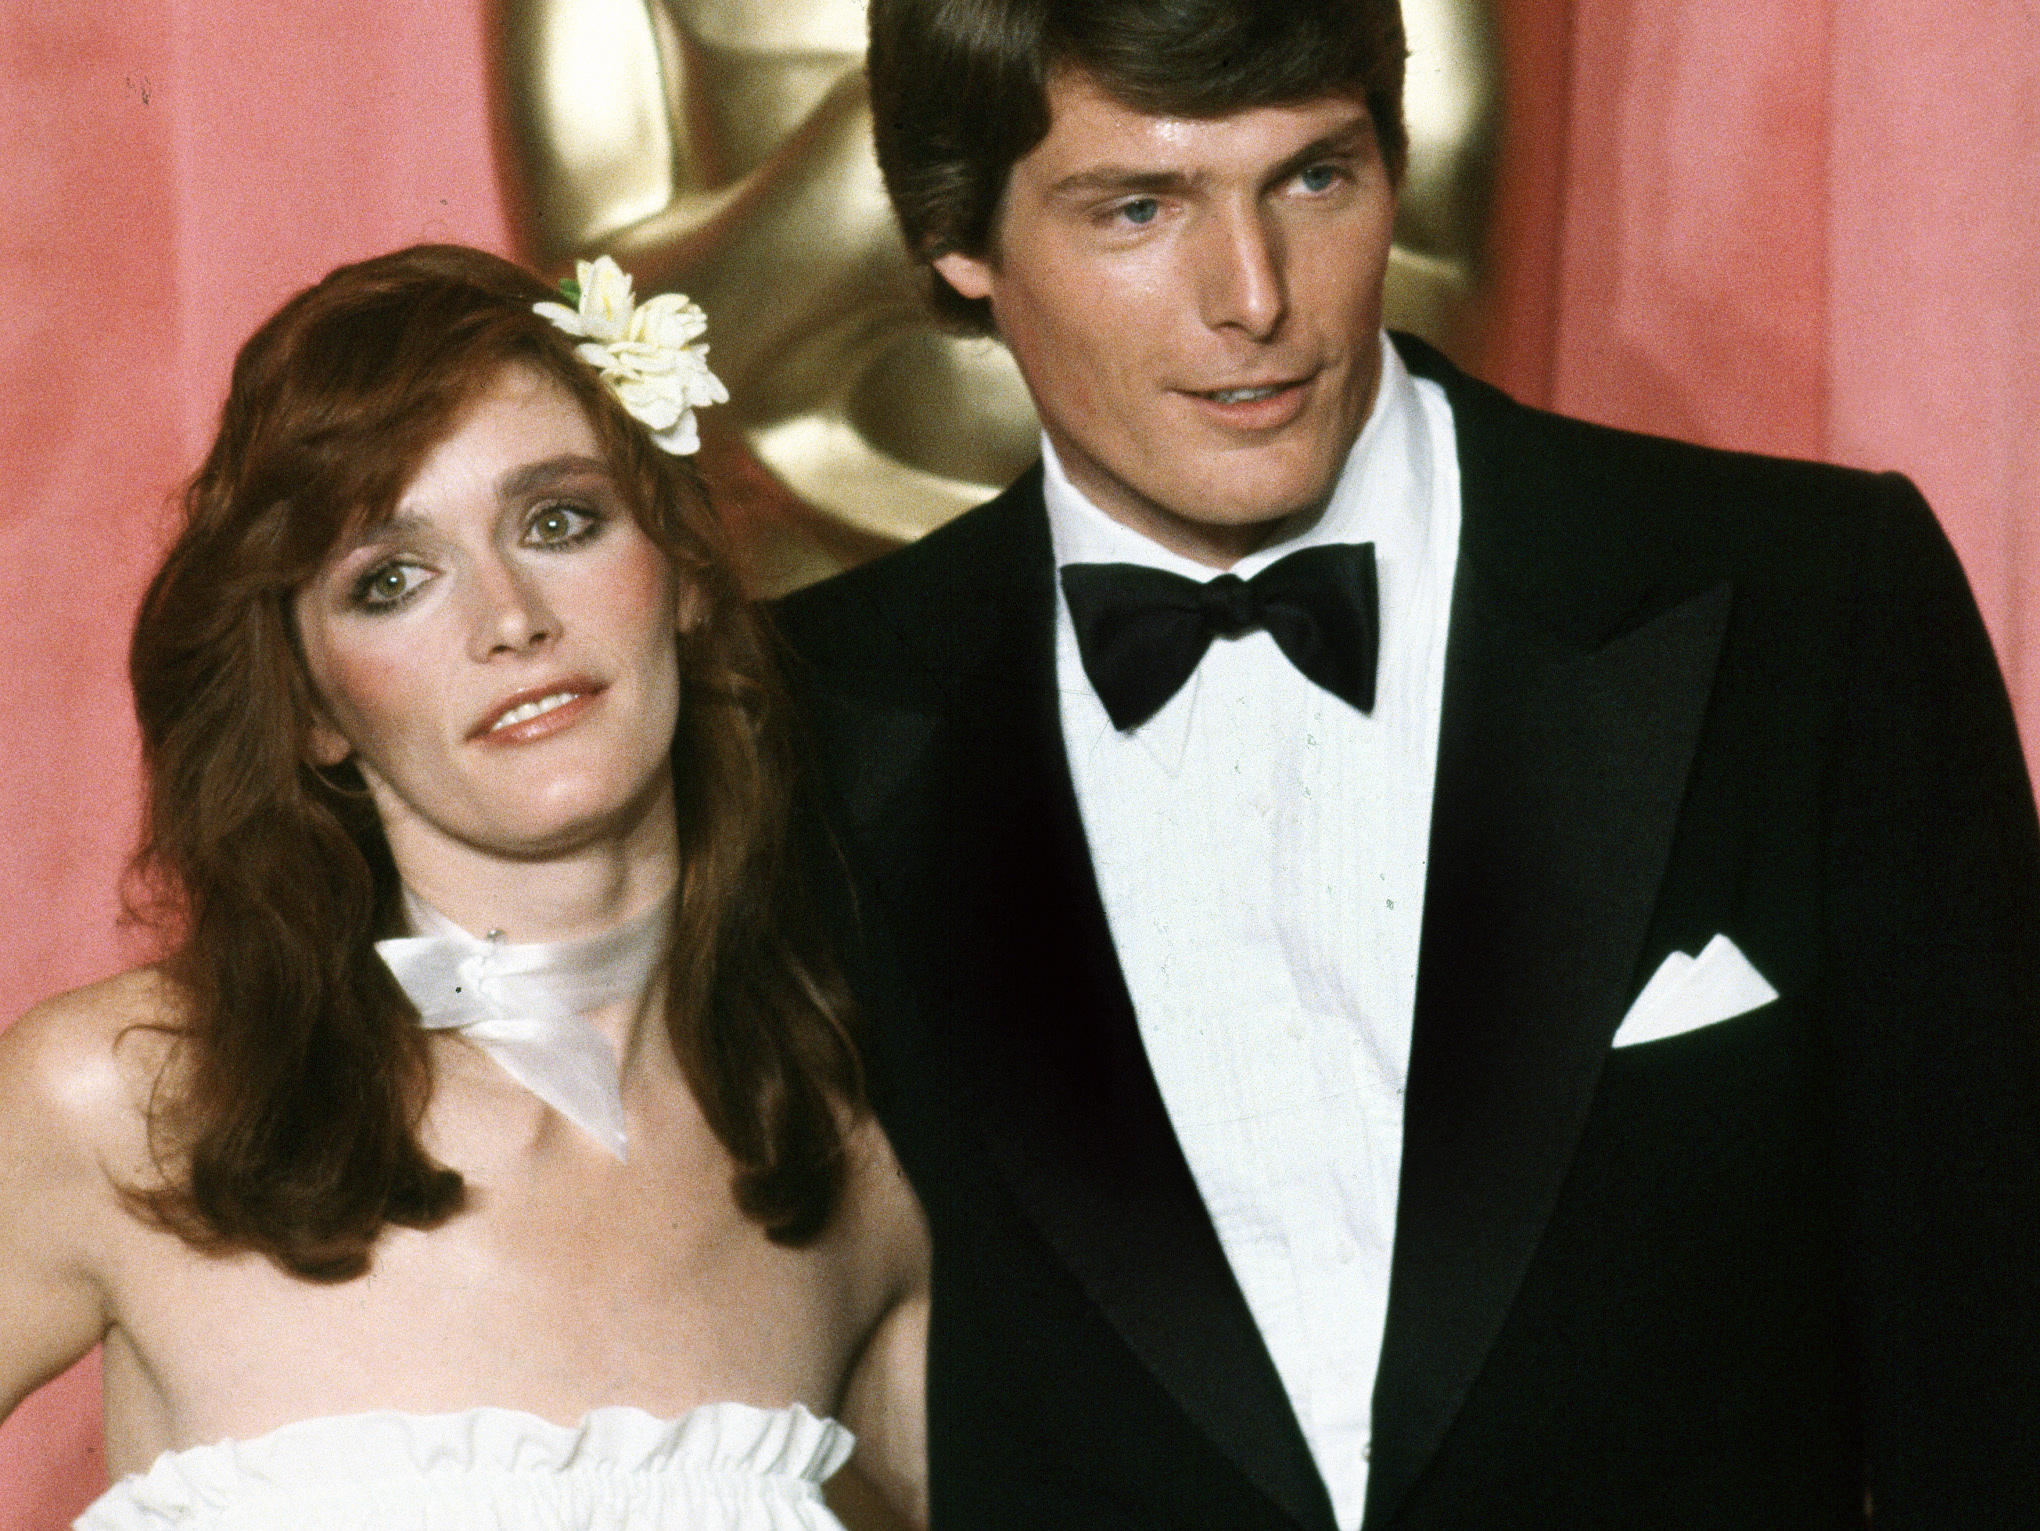 Actress Margot Kidder is seen here with her <em>Superman</em> co-star Christopher Reeve.